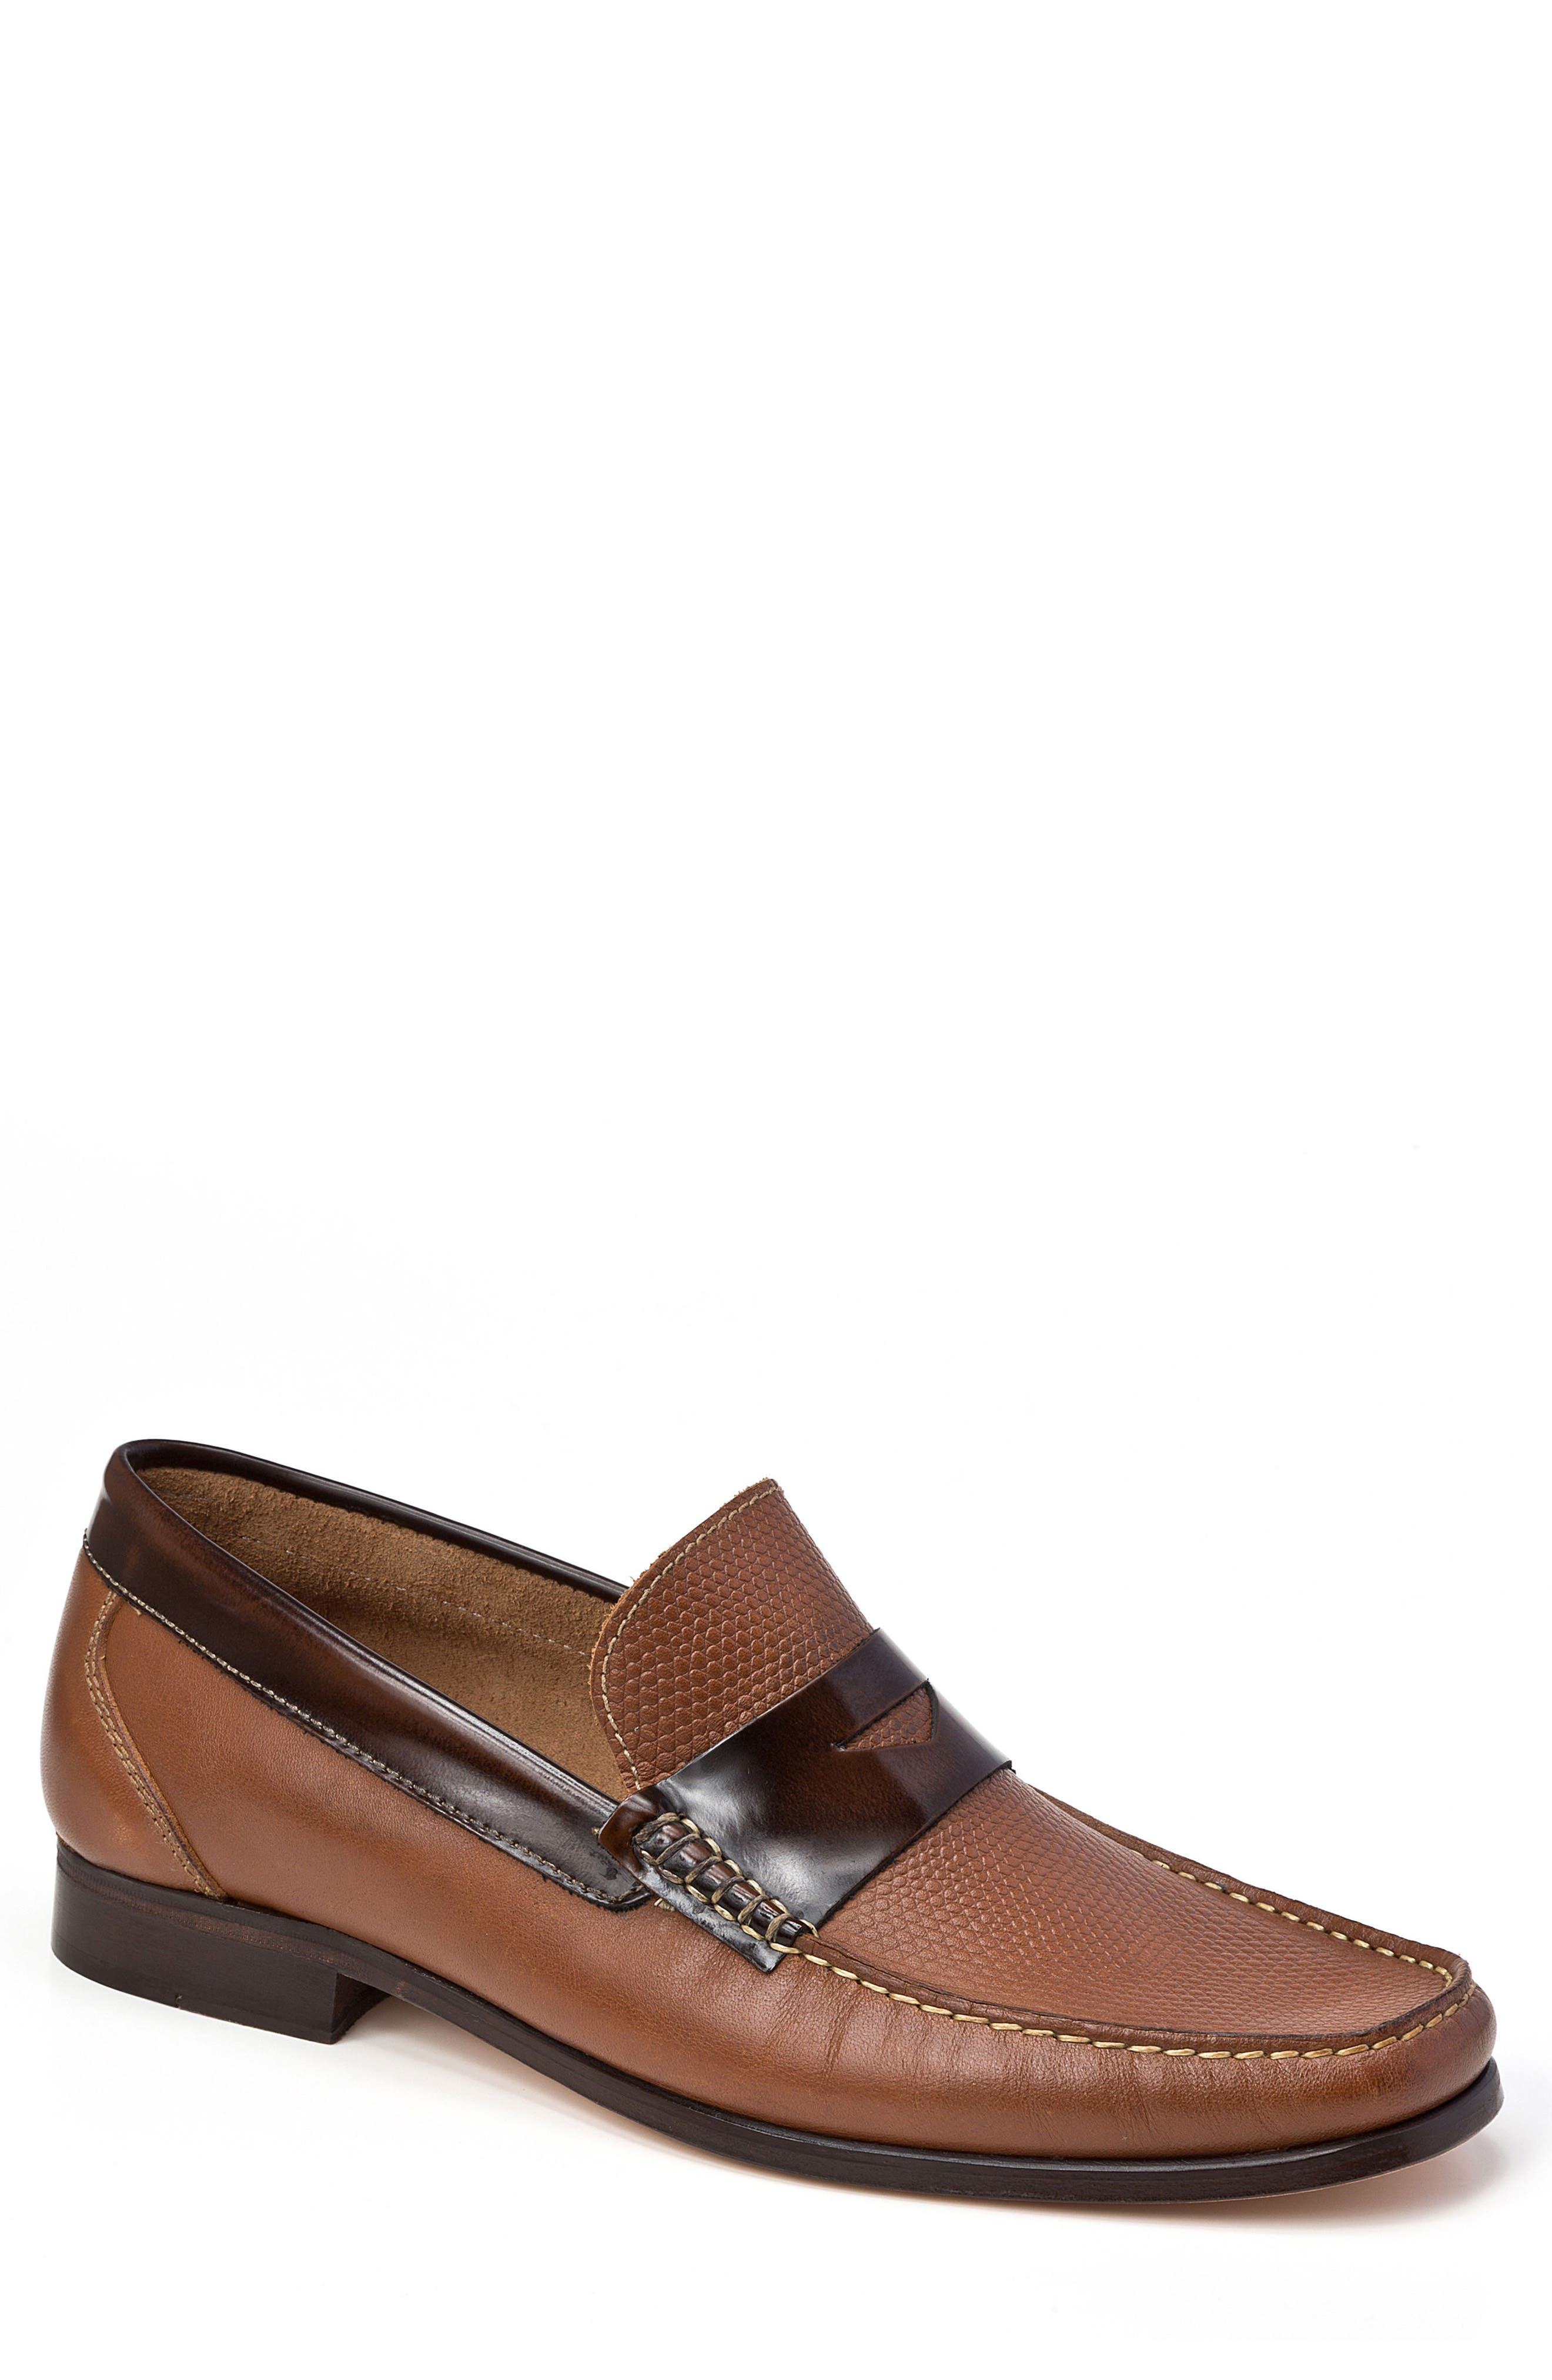 Sandro Moscoloni Bilbao Pebble Embossed Penny Loafer, Brown